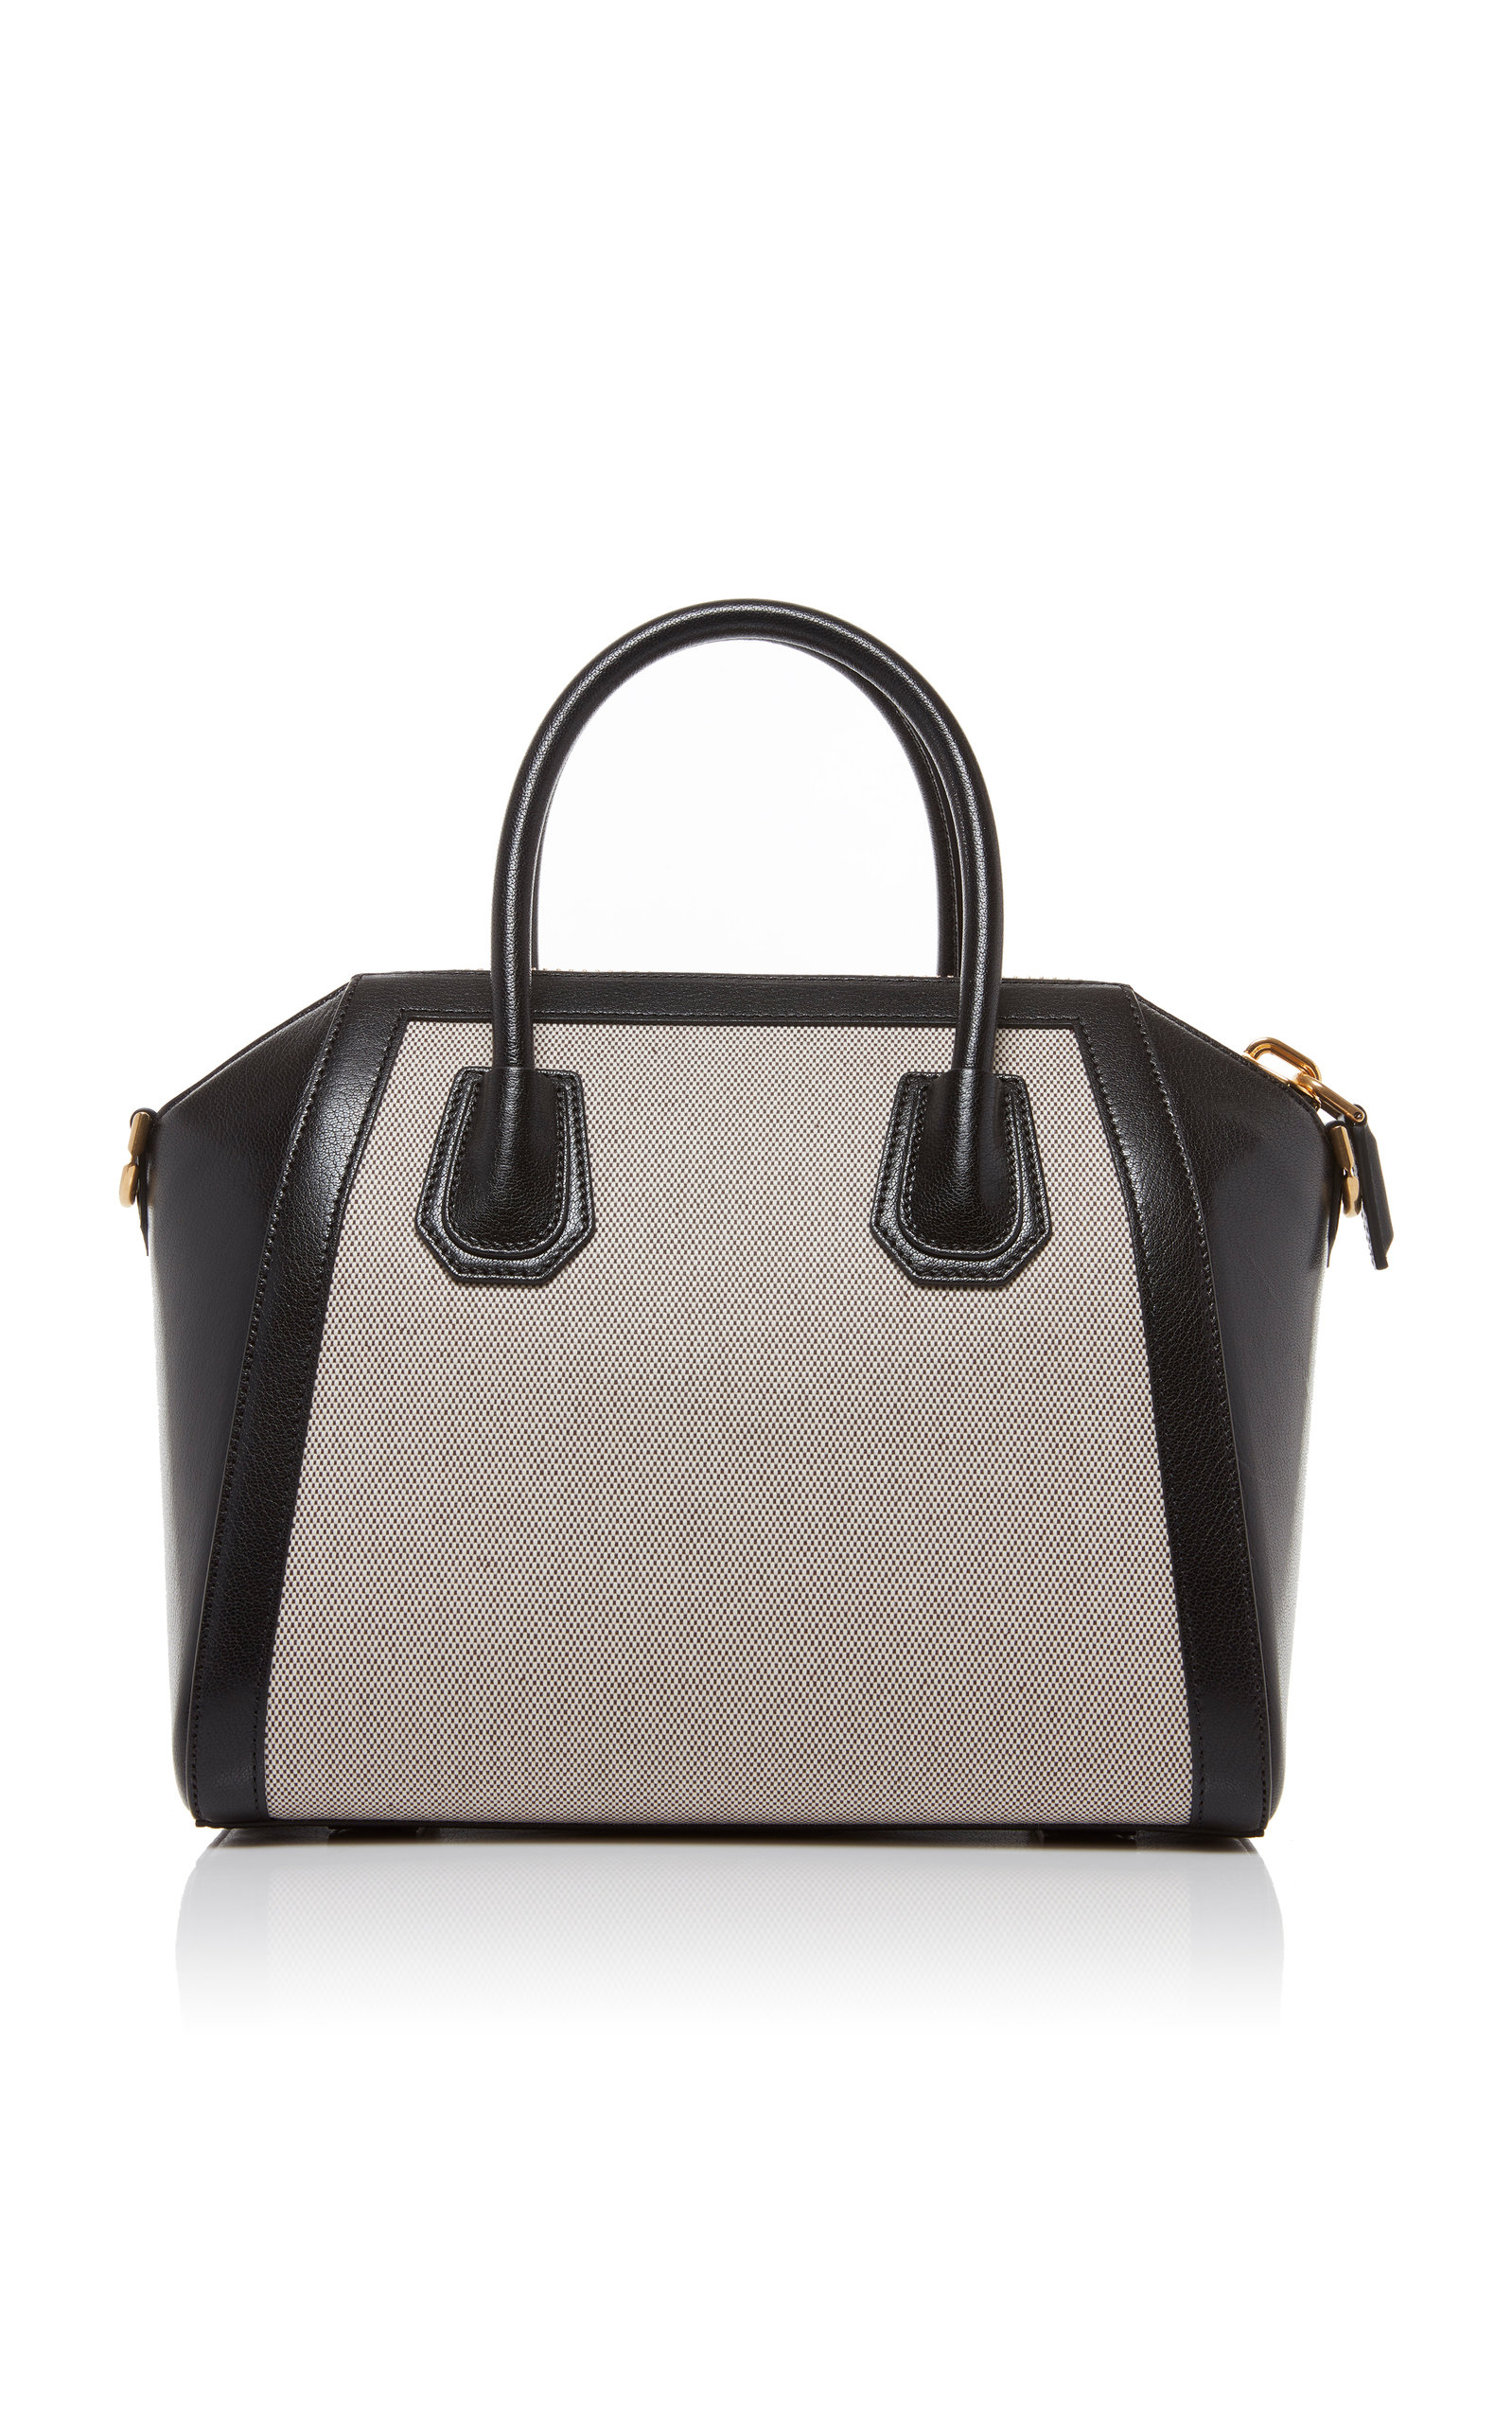 GivenchyAntigona Small Leather and Linen Tote. CLOSE. Loading. Loading.  Loading. Loading a2f4c55006f13